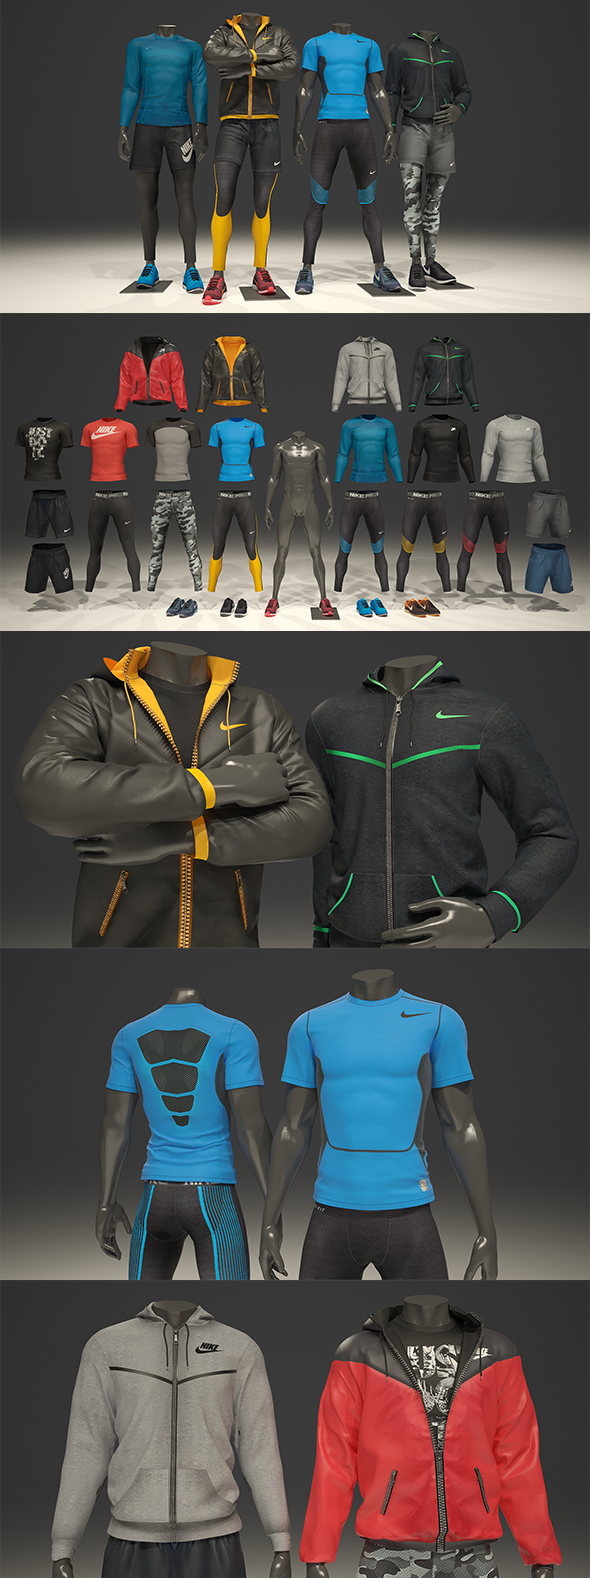 3DOcean Male mannequin Nike pack 1 3D model 20847474